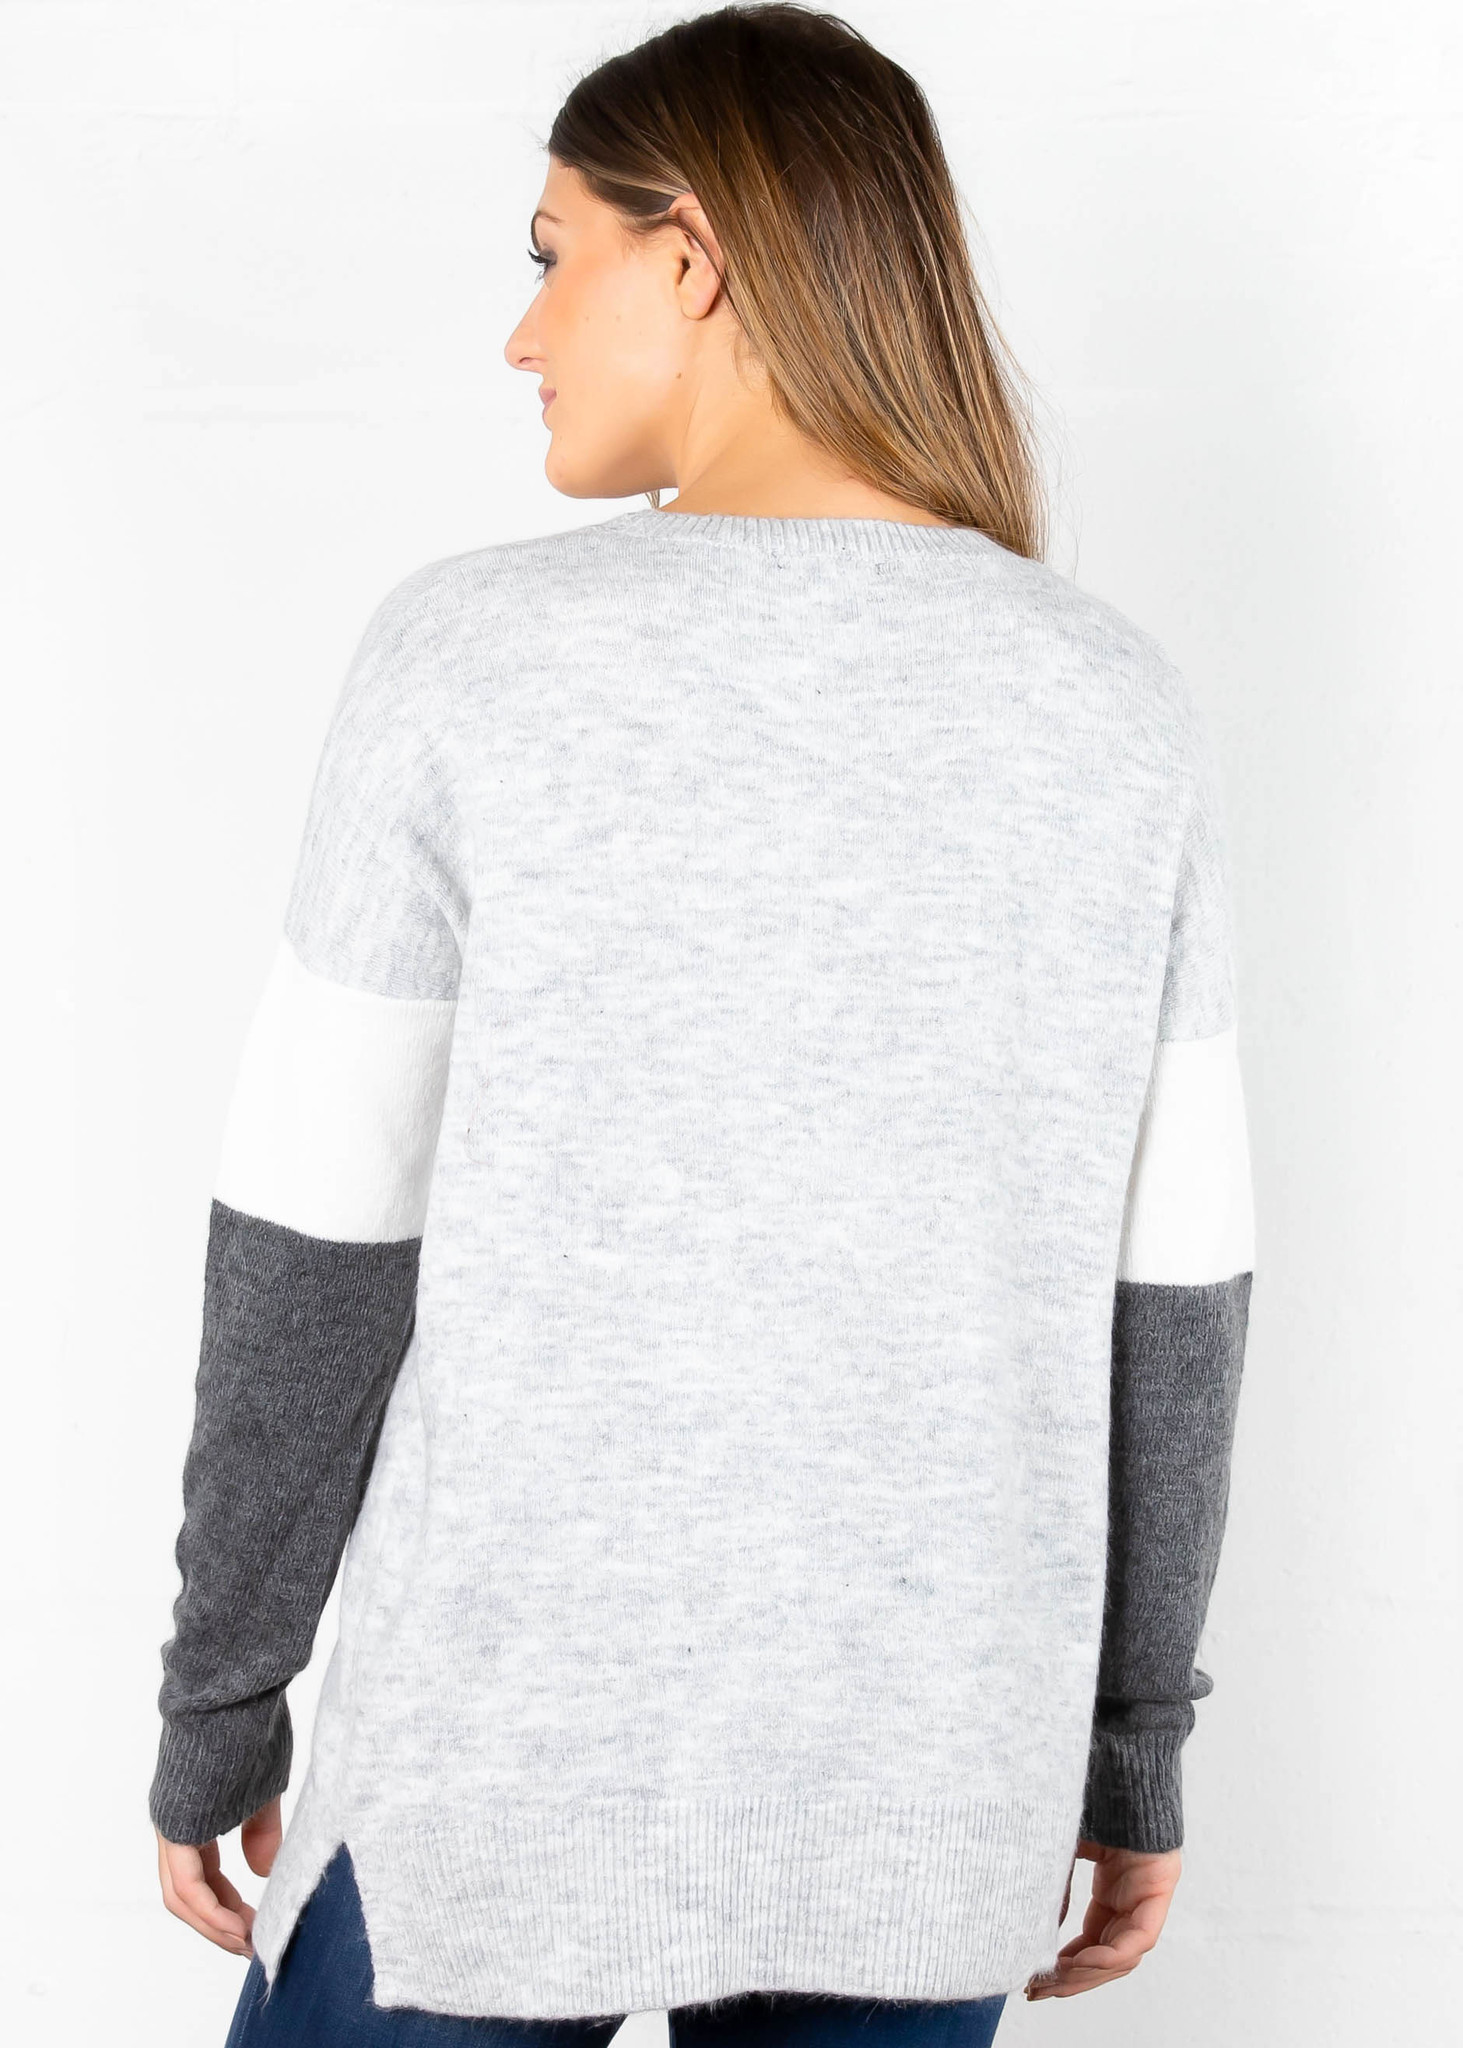 BACK + FORTH COLOR BLOCK SWEATER